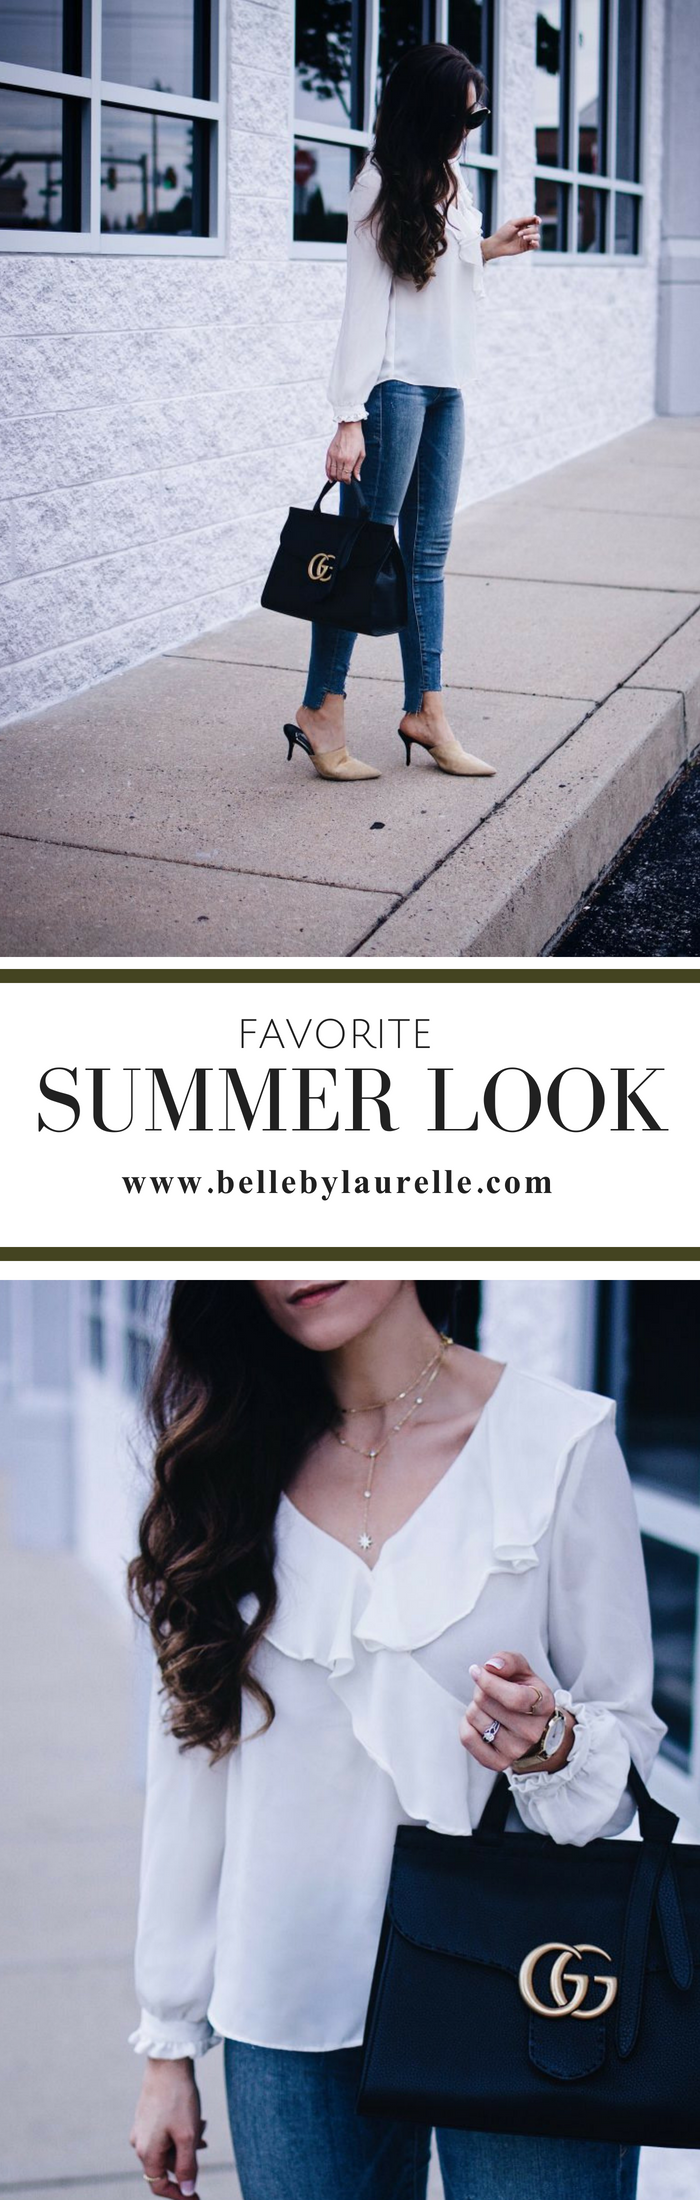 Belle by Laurelle Favorite Summer Look Gucci Fashion Blog